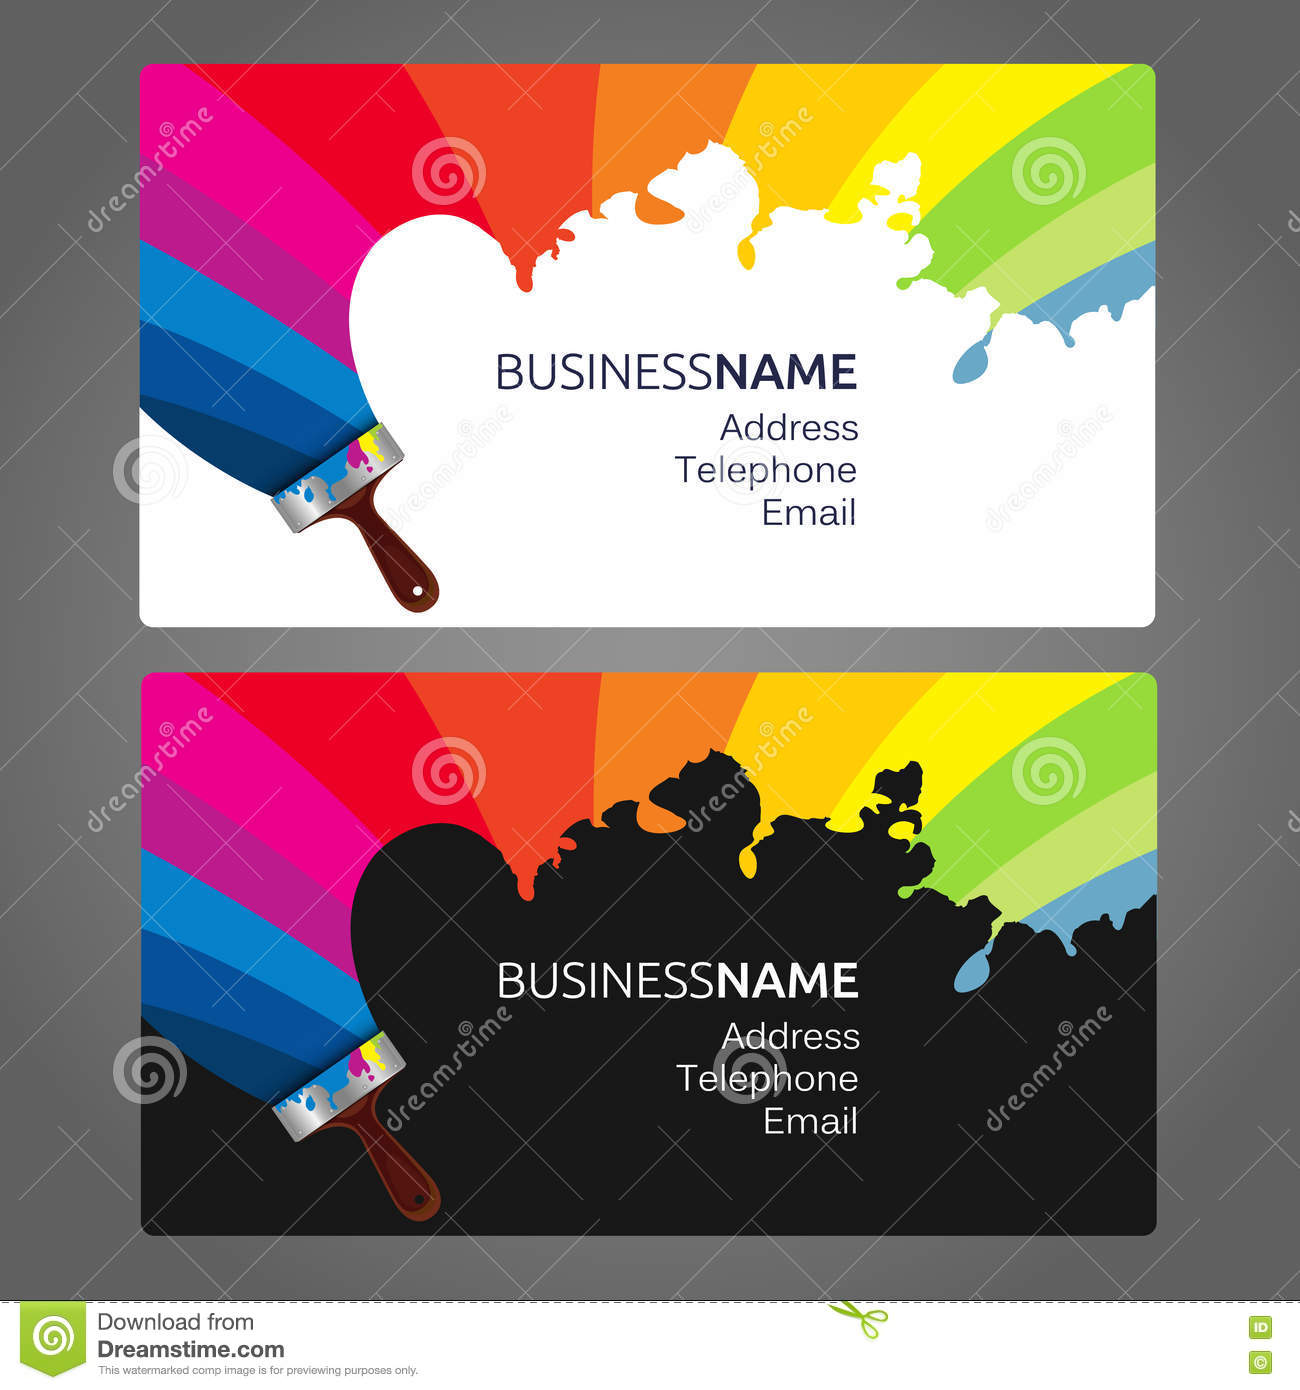 Business card Paint stock vector. Illustration of decorative - 76913685